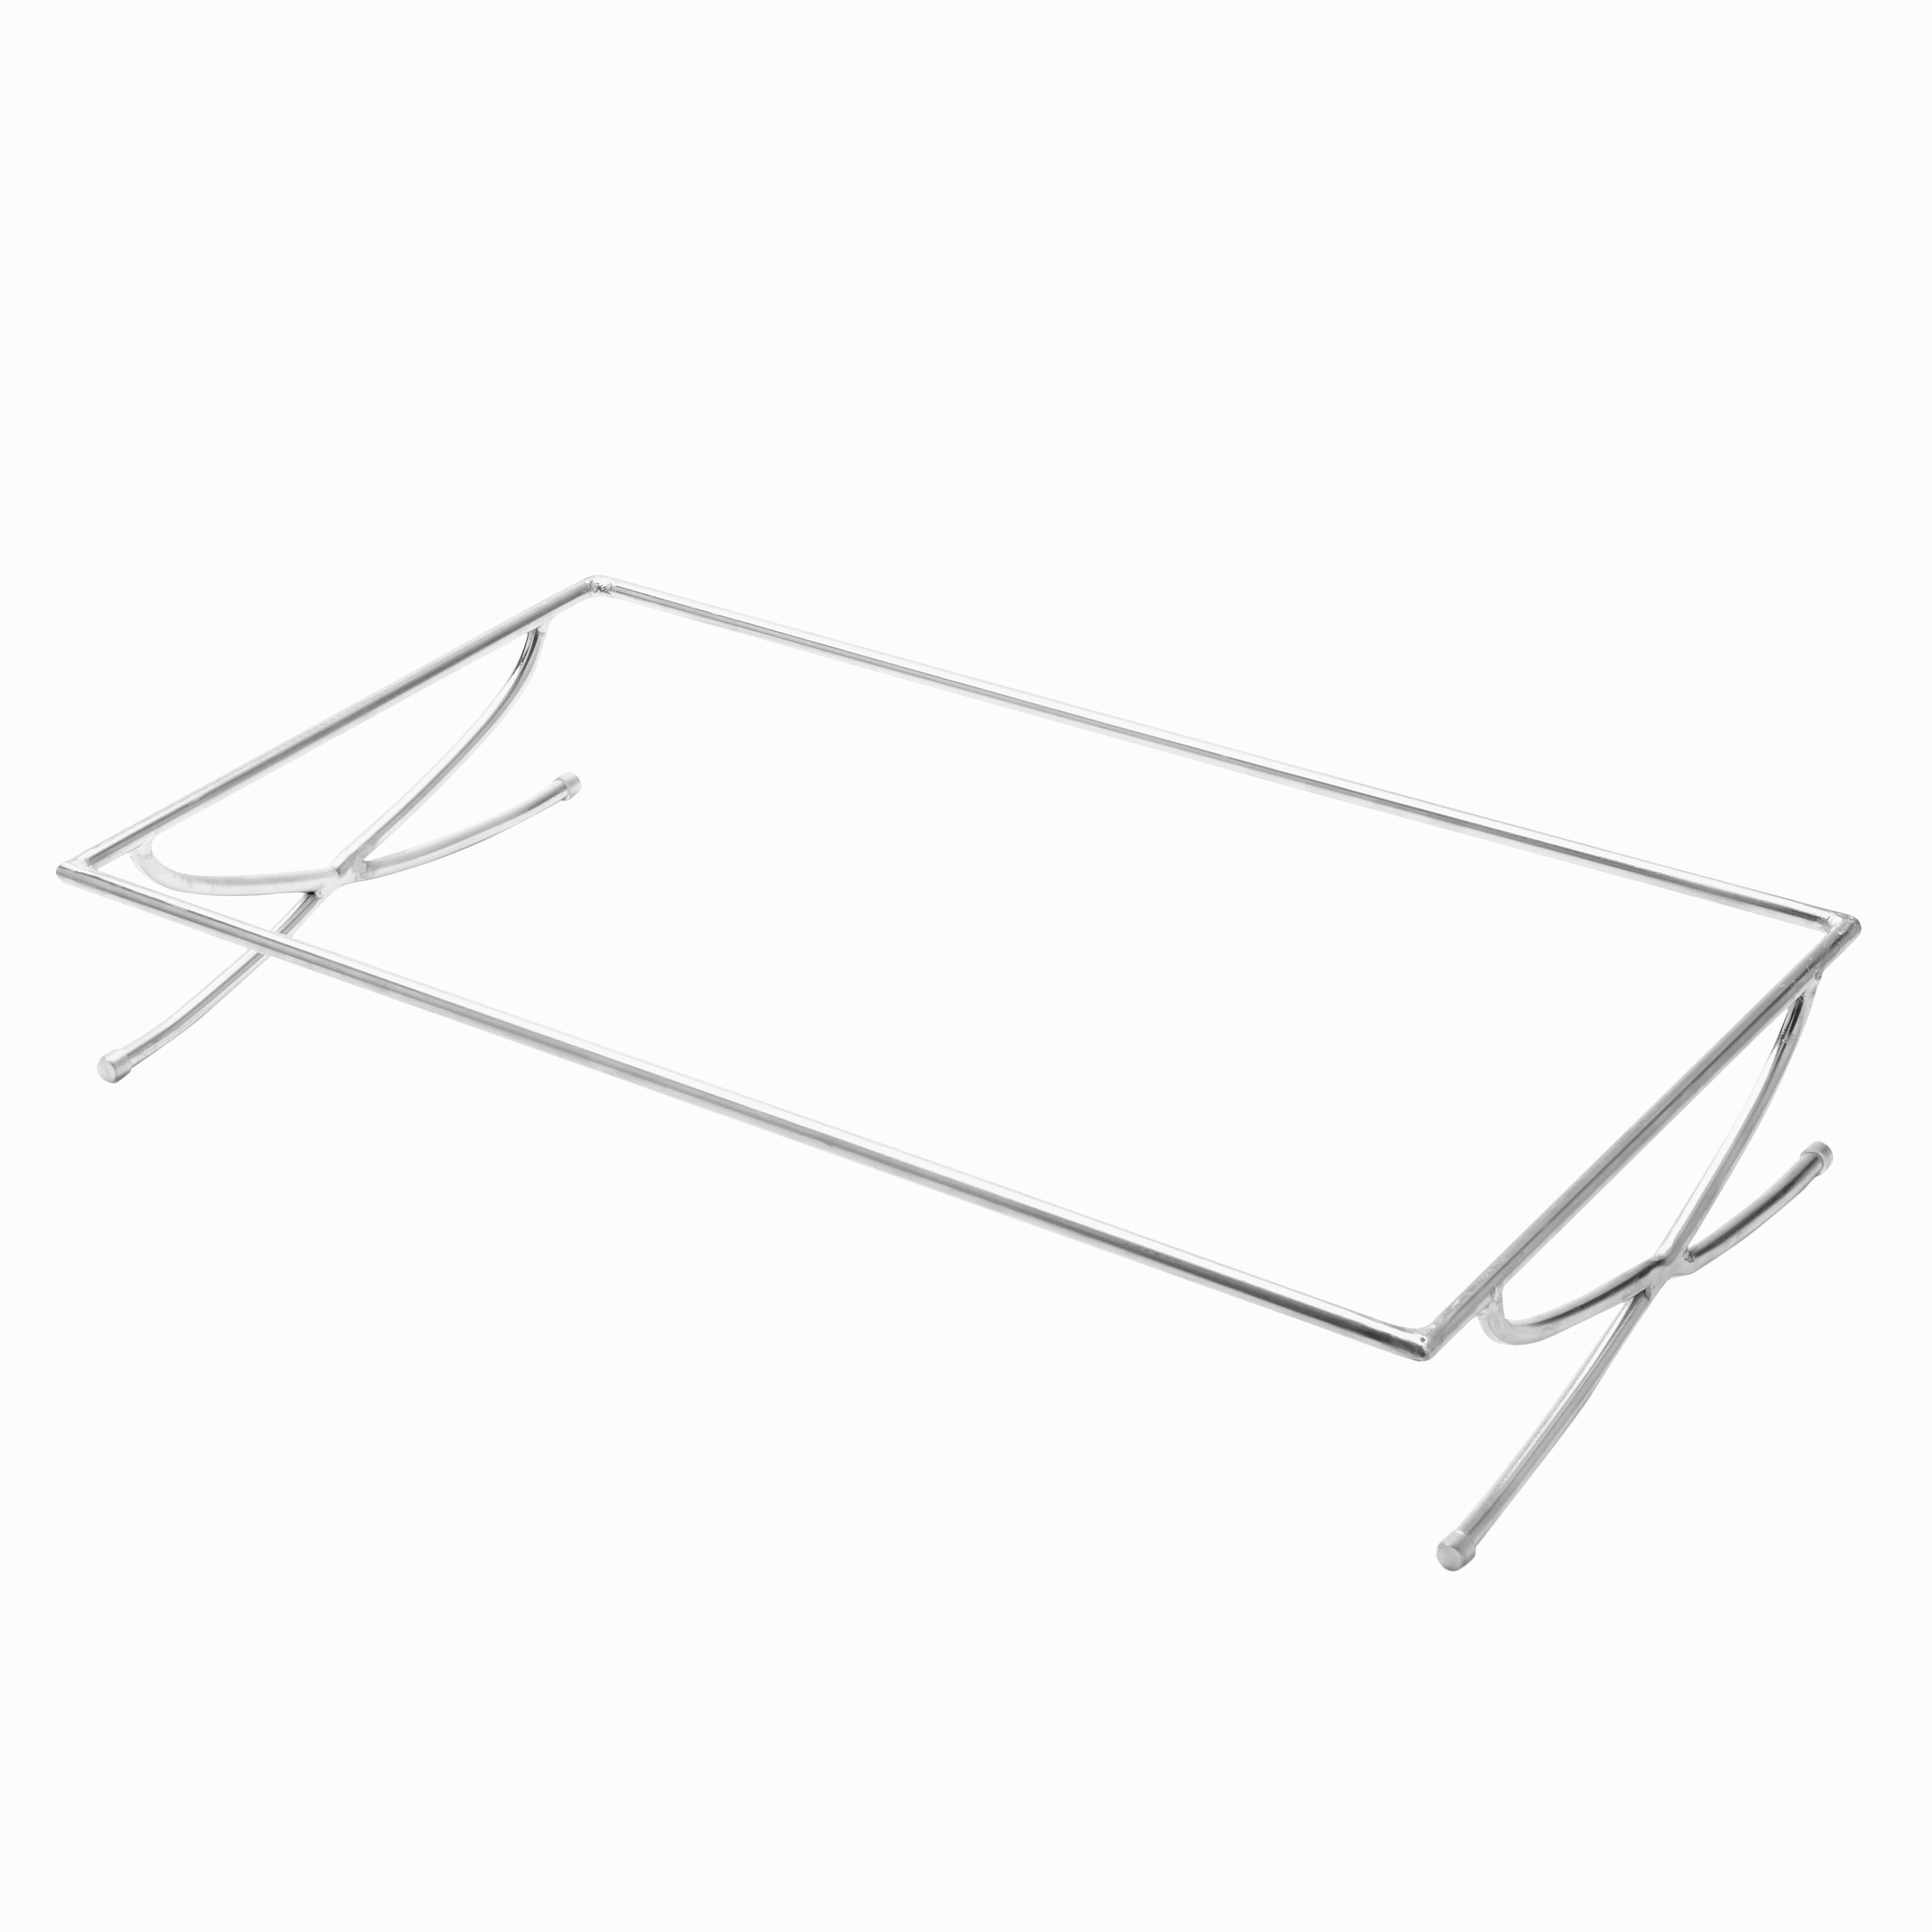 American Metalcraft GSREC griddle stand, stainless steel